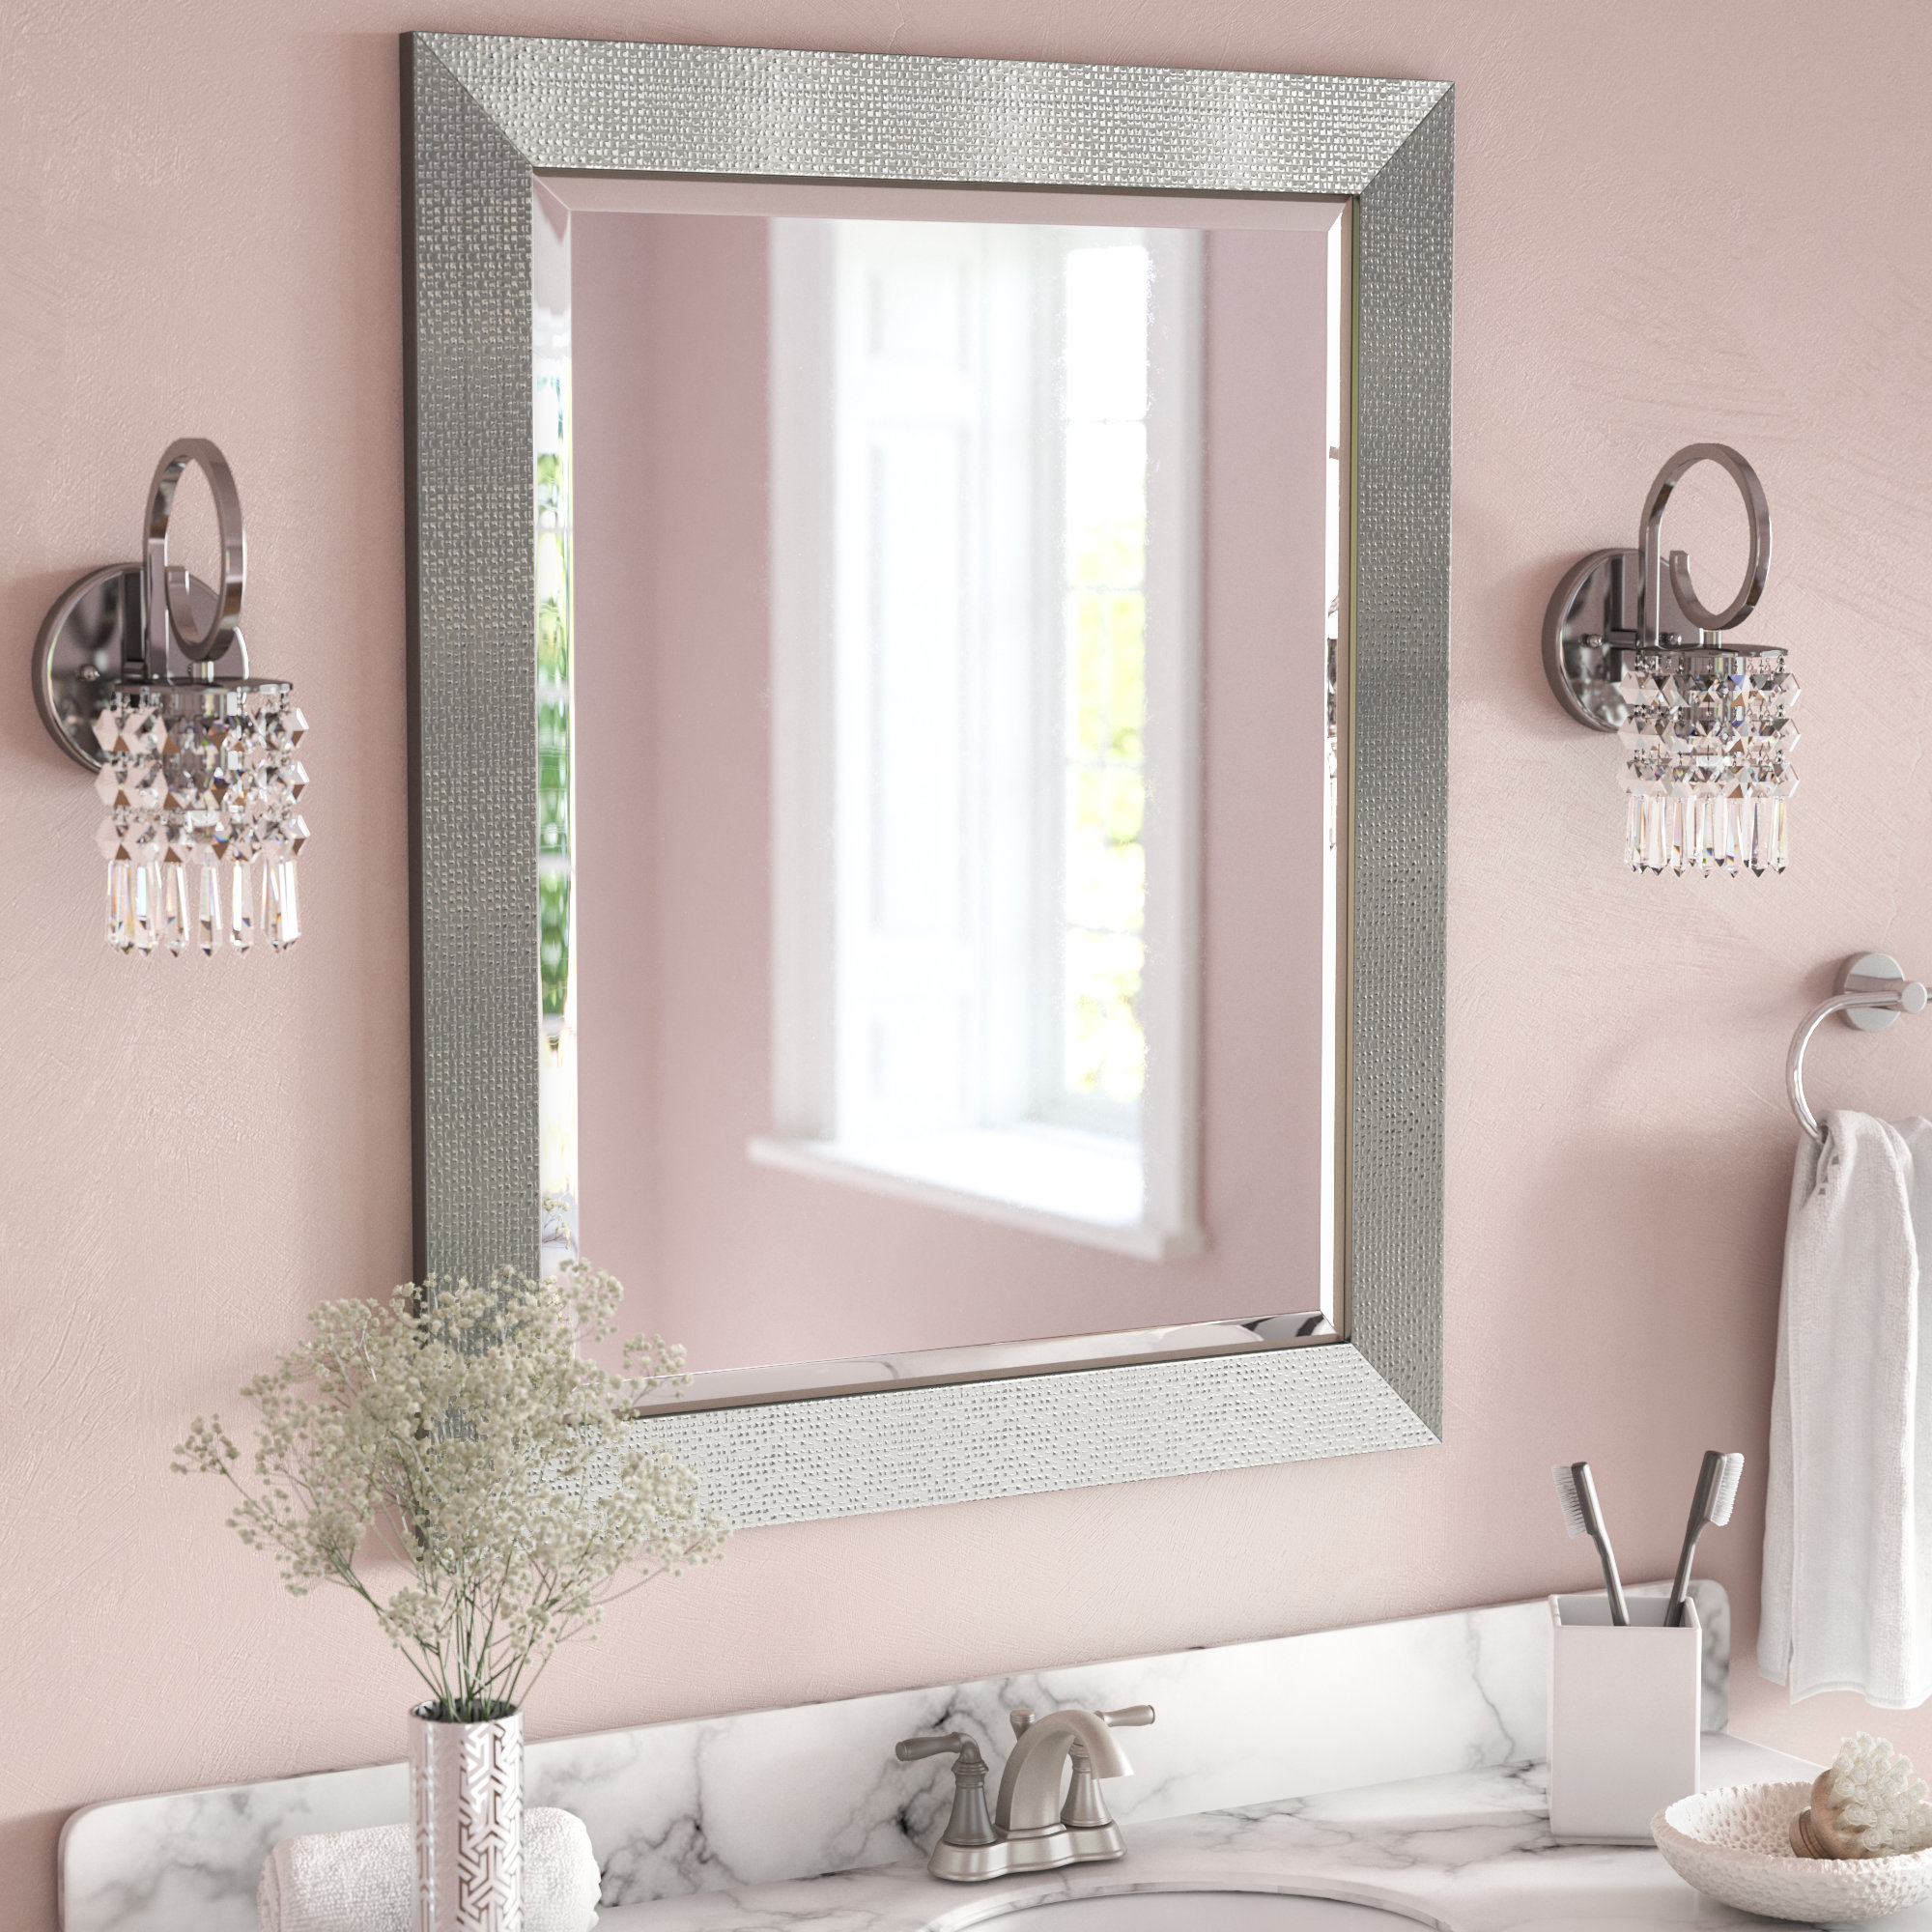 Rectangle Accent Wall Mirror Inside Rectangle Accent Wall Mirrors (Gallery 2 of 30)